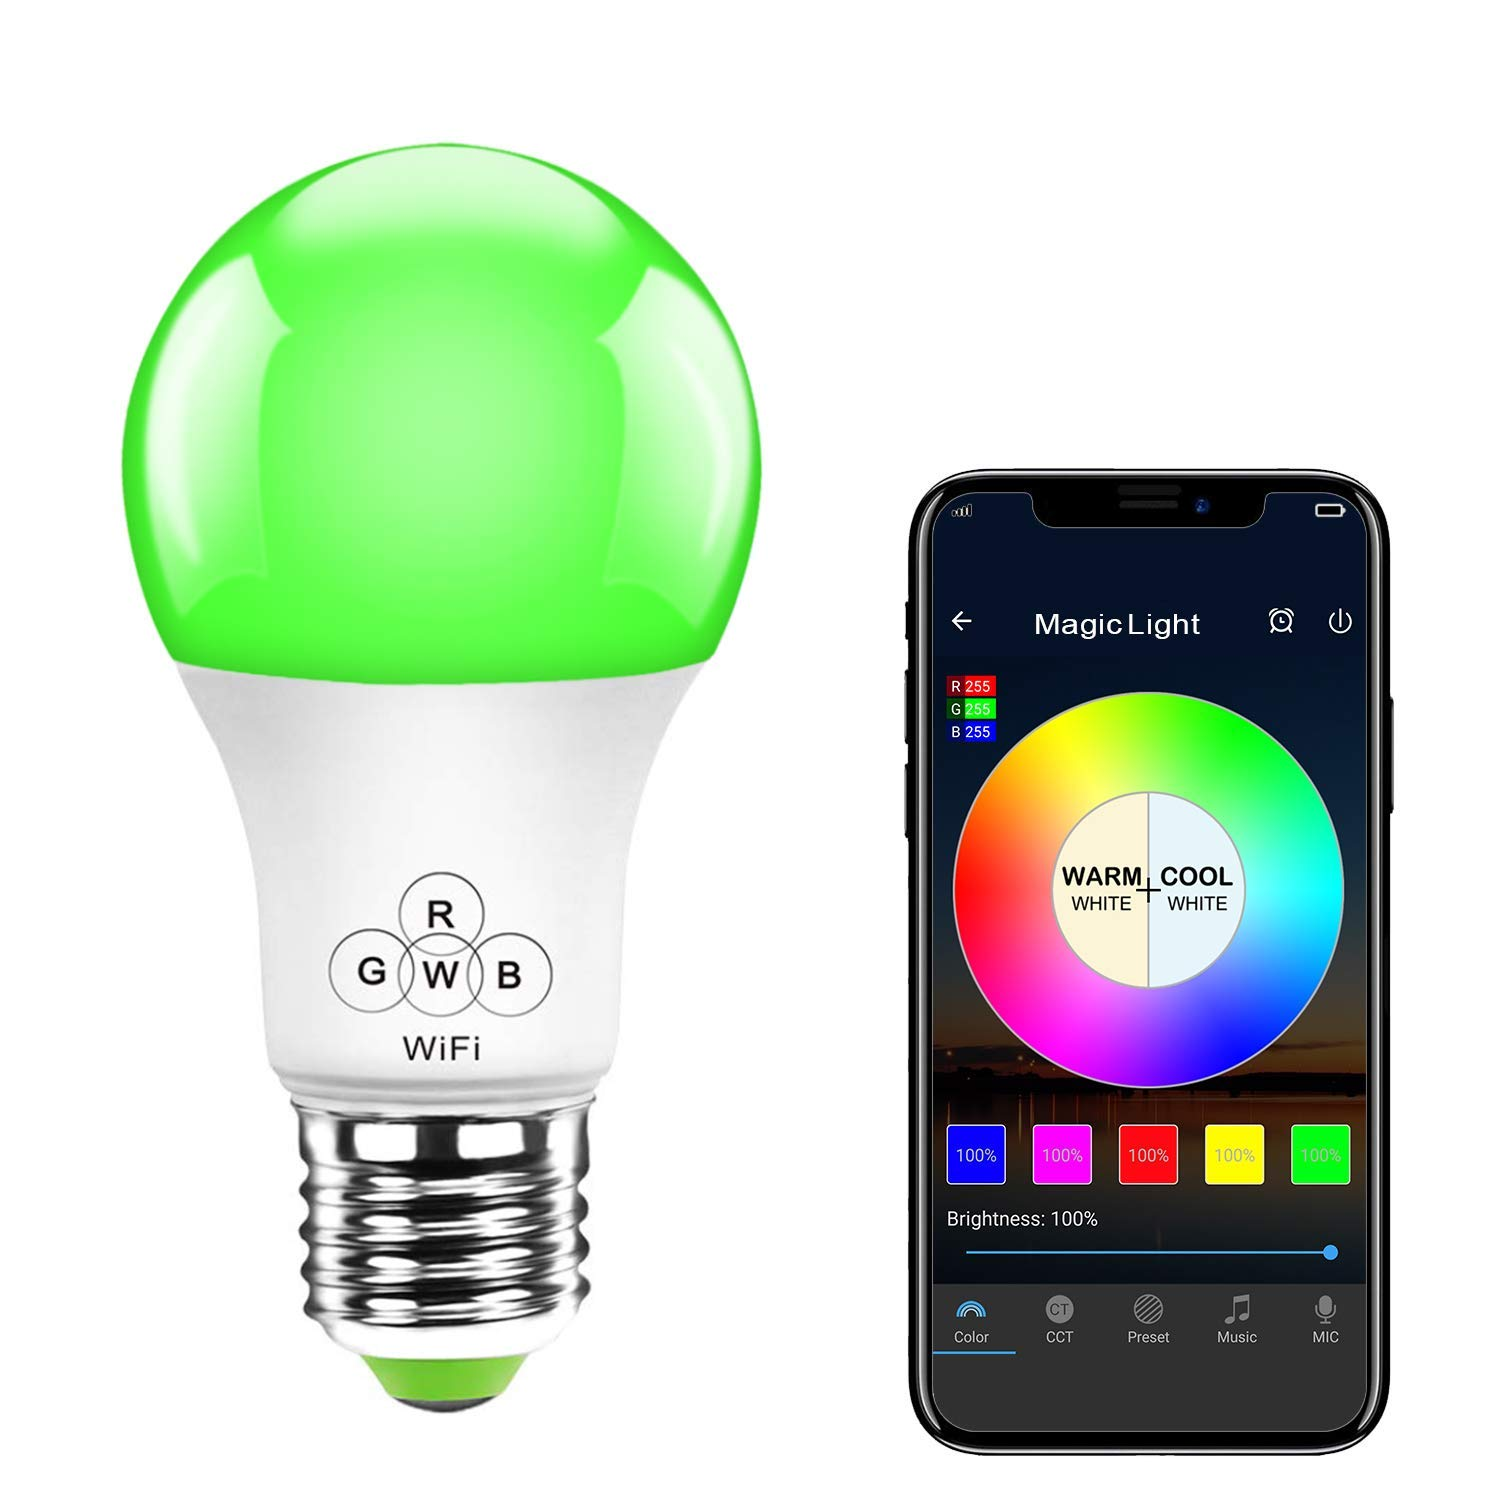 MagicLight WiFi Smart Light Bulb, 2nd Generation Dimmable Multicolor A19 E26 Household LED Bulb, No Hub Required, Compatible with Alexa, Google Home, IFTTT and Siri Shortcut